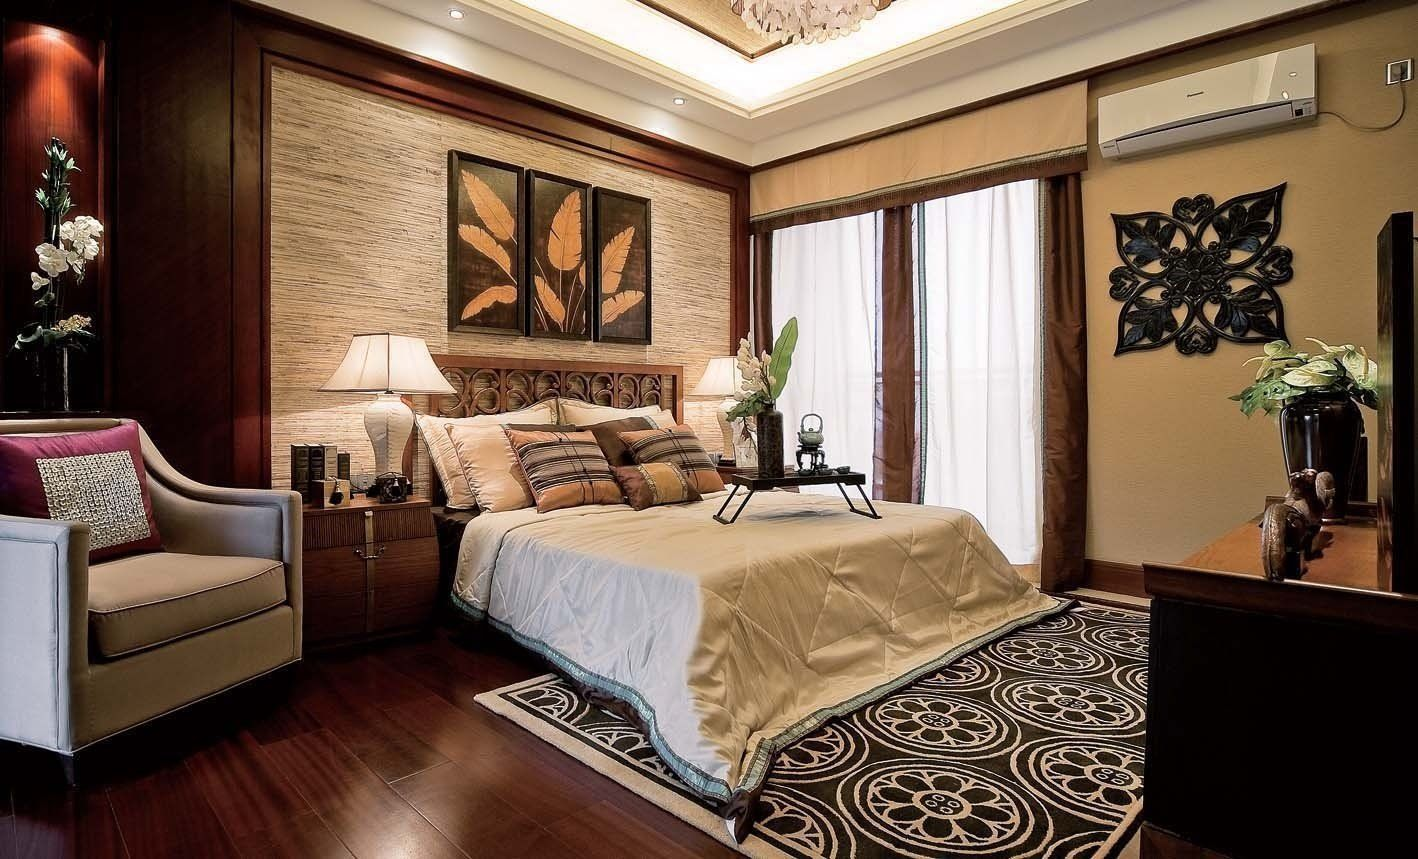 Modern traditional bedroom furniture - Traditional Meet Modern Master Bedroom Interior Decor With